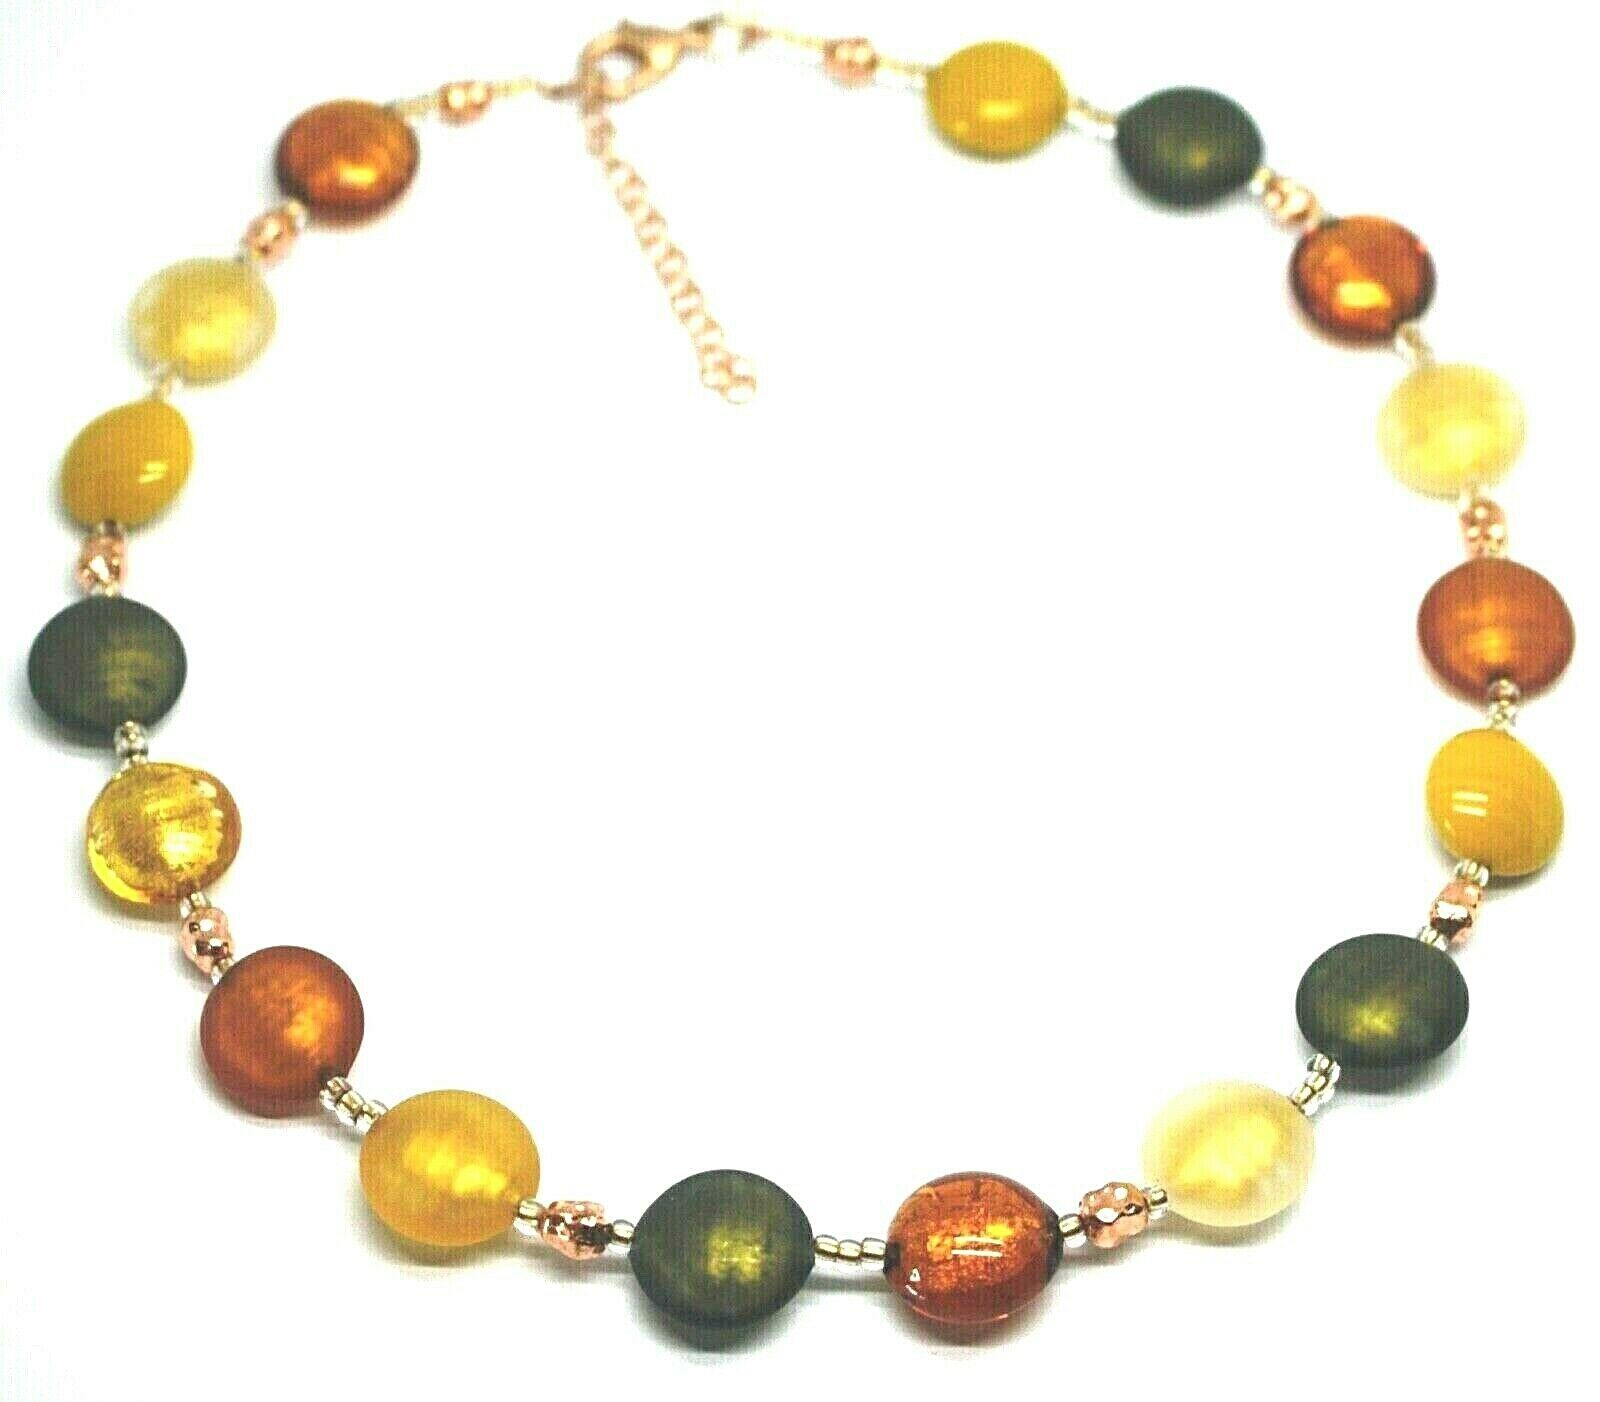 "NECKLACE GREEN ORANGE YELLOW ROUNDED MURANO GLASS DISC, 45cm 18"", MADE IN ITALY"